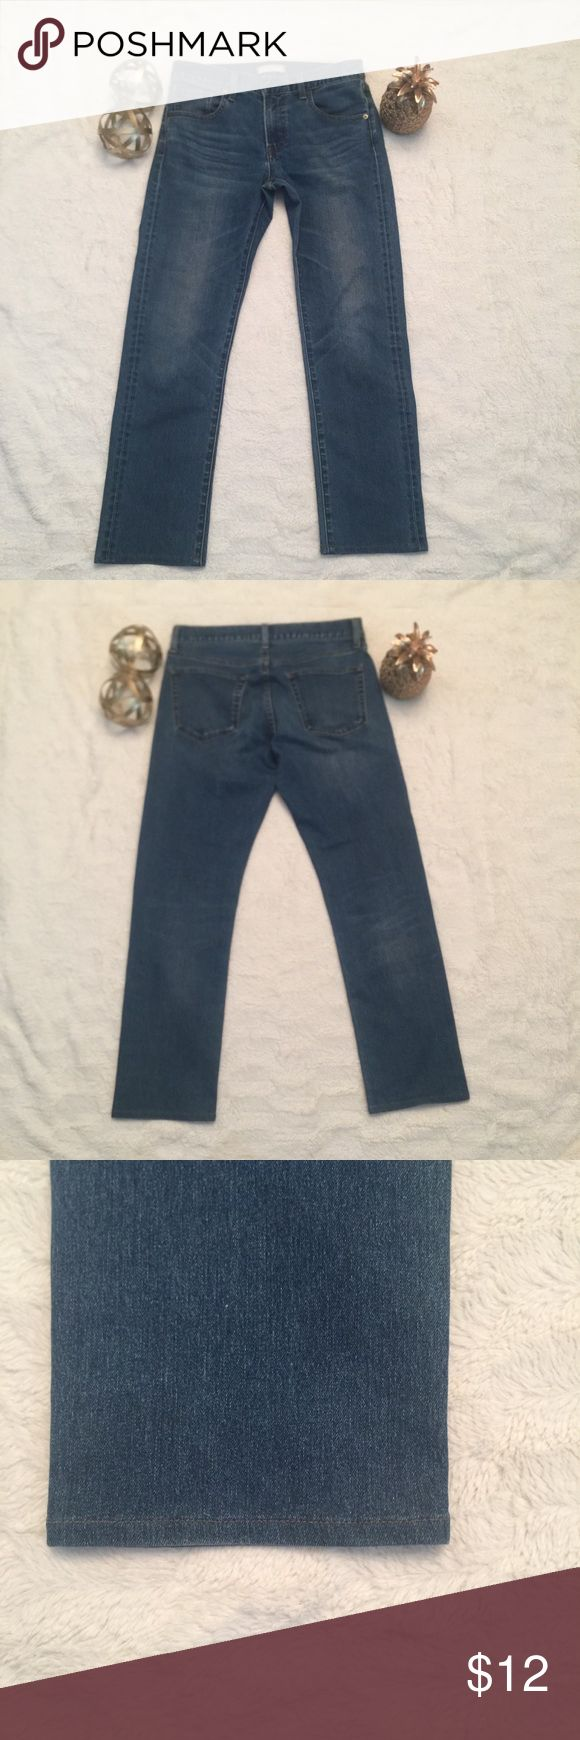 Uniqlo Jeans Uniqlo Jeans. Straight leg. These have been altered and shortened. Tag says 29 x 32 but length is closer to 27 inches. Uniqlo Jeans Straight Leg